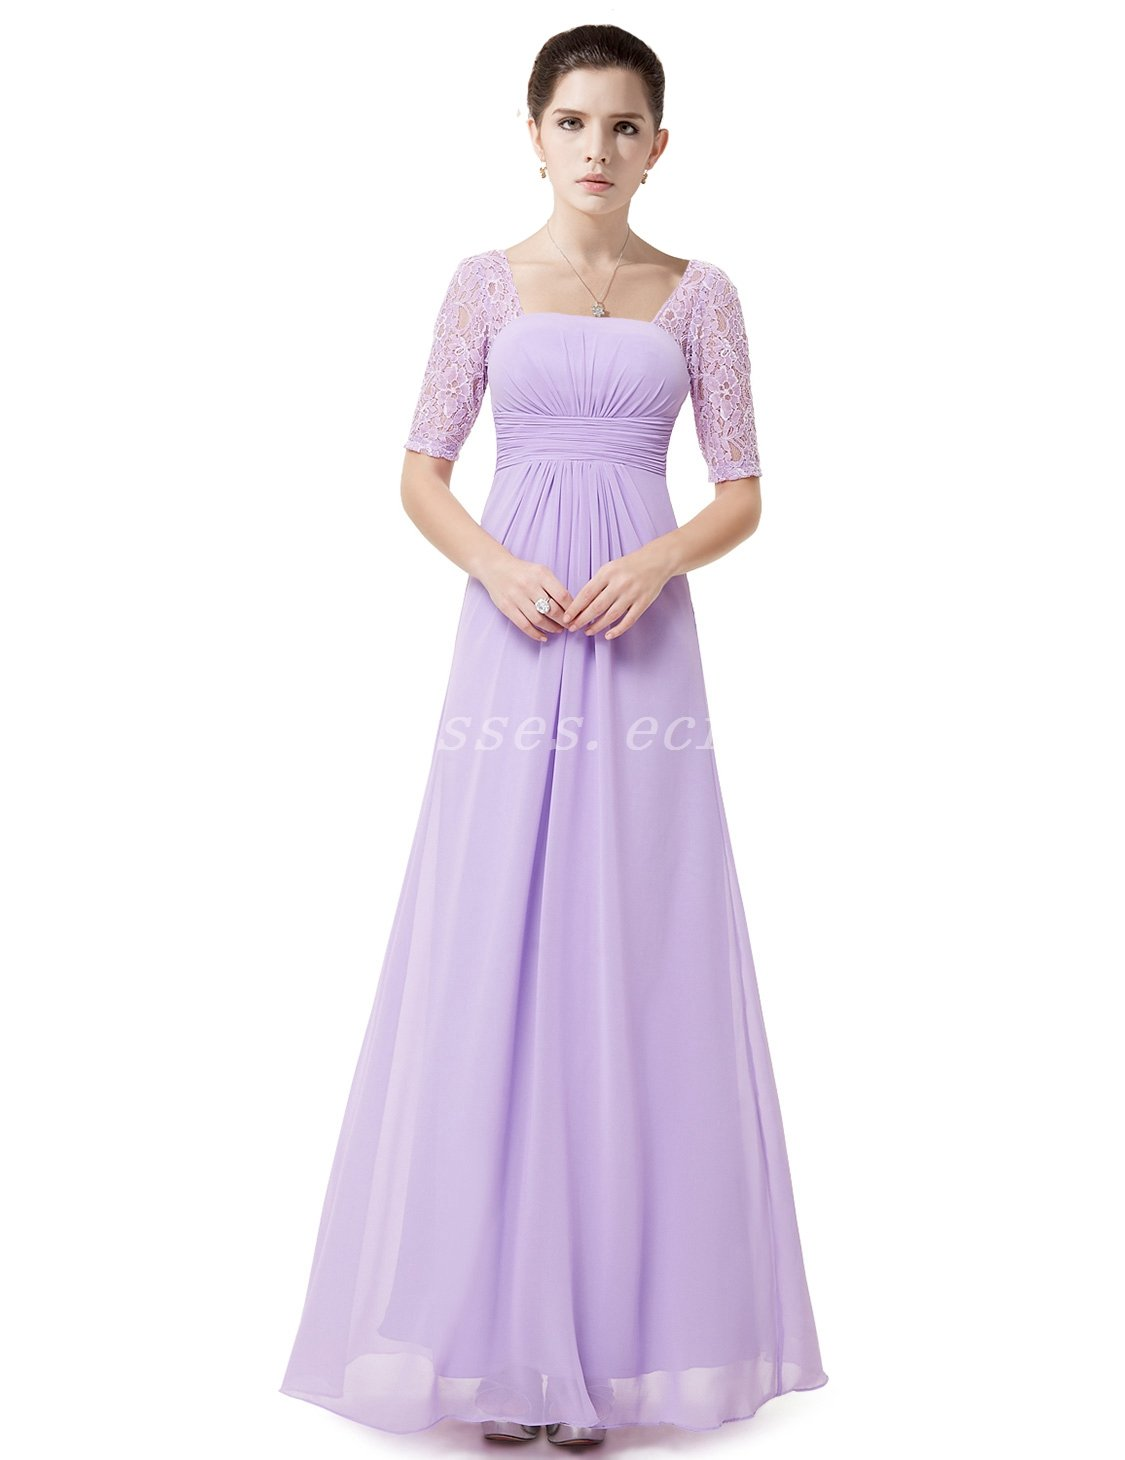 Half Sleeves Square Neckline Lilac Bridesmaid Dresses With Lace